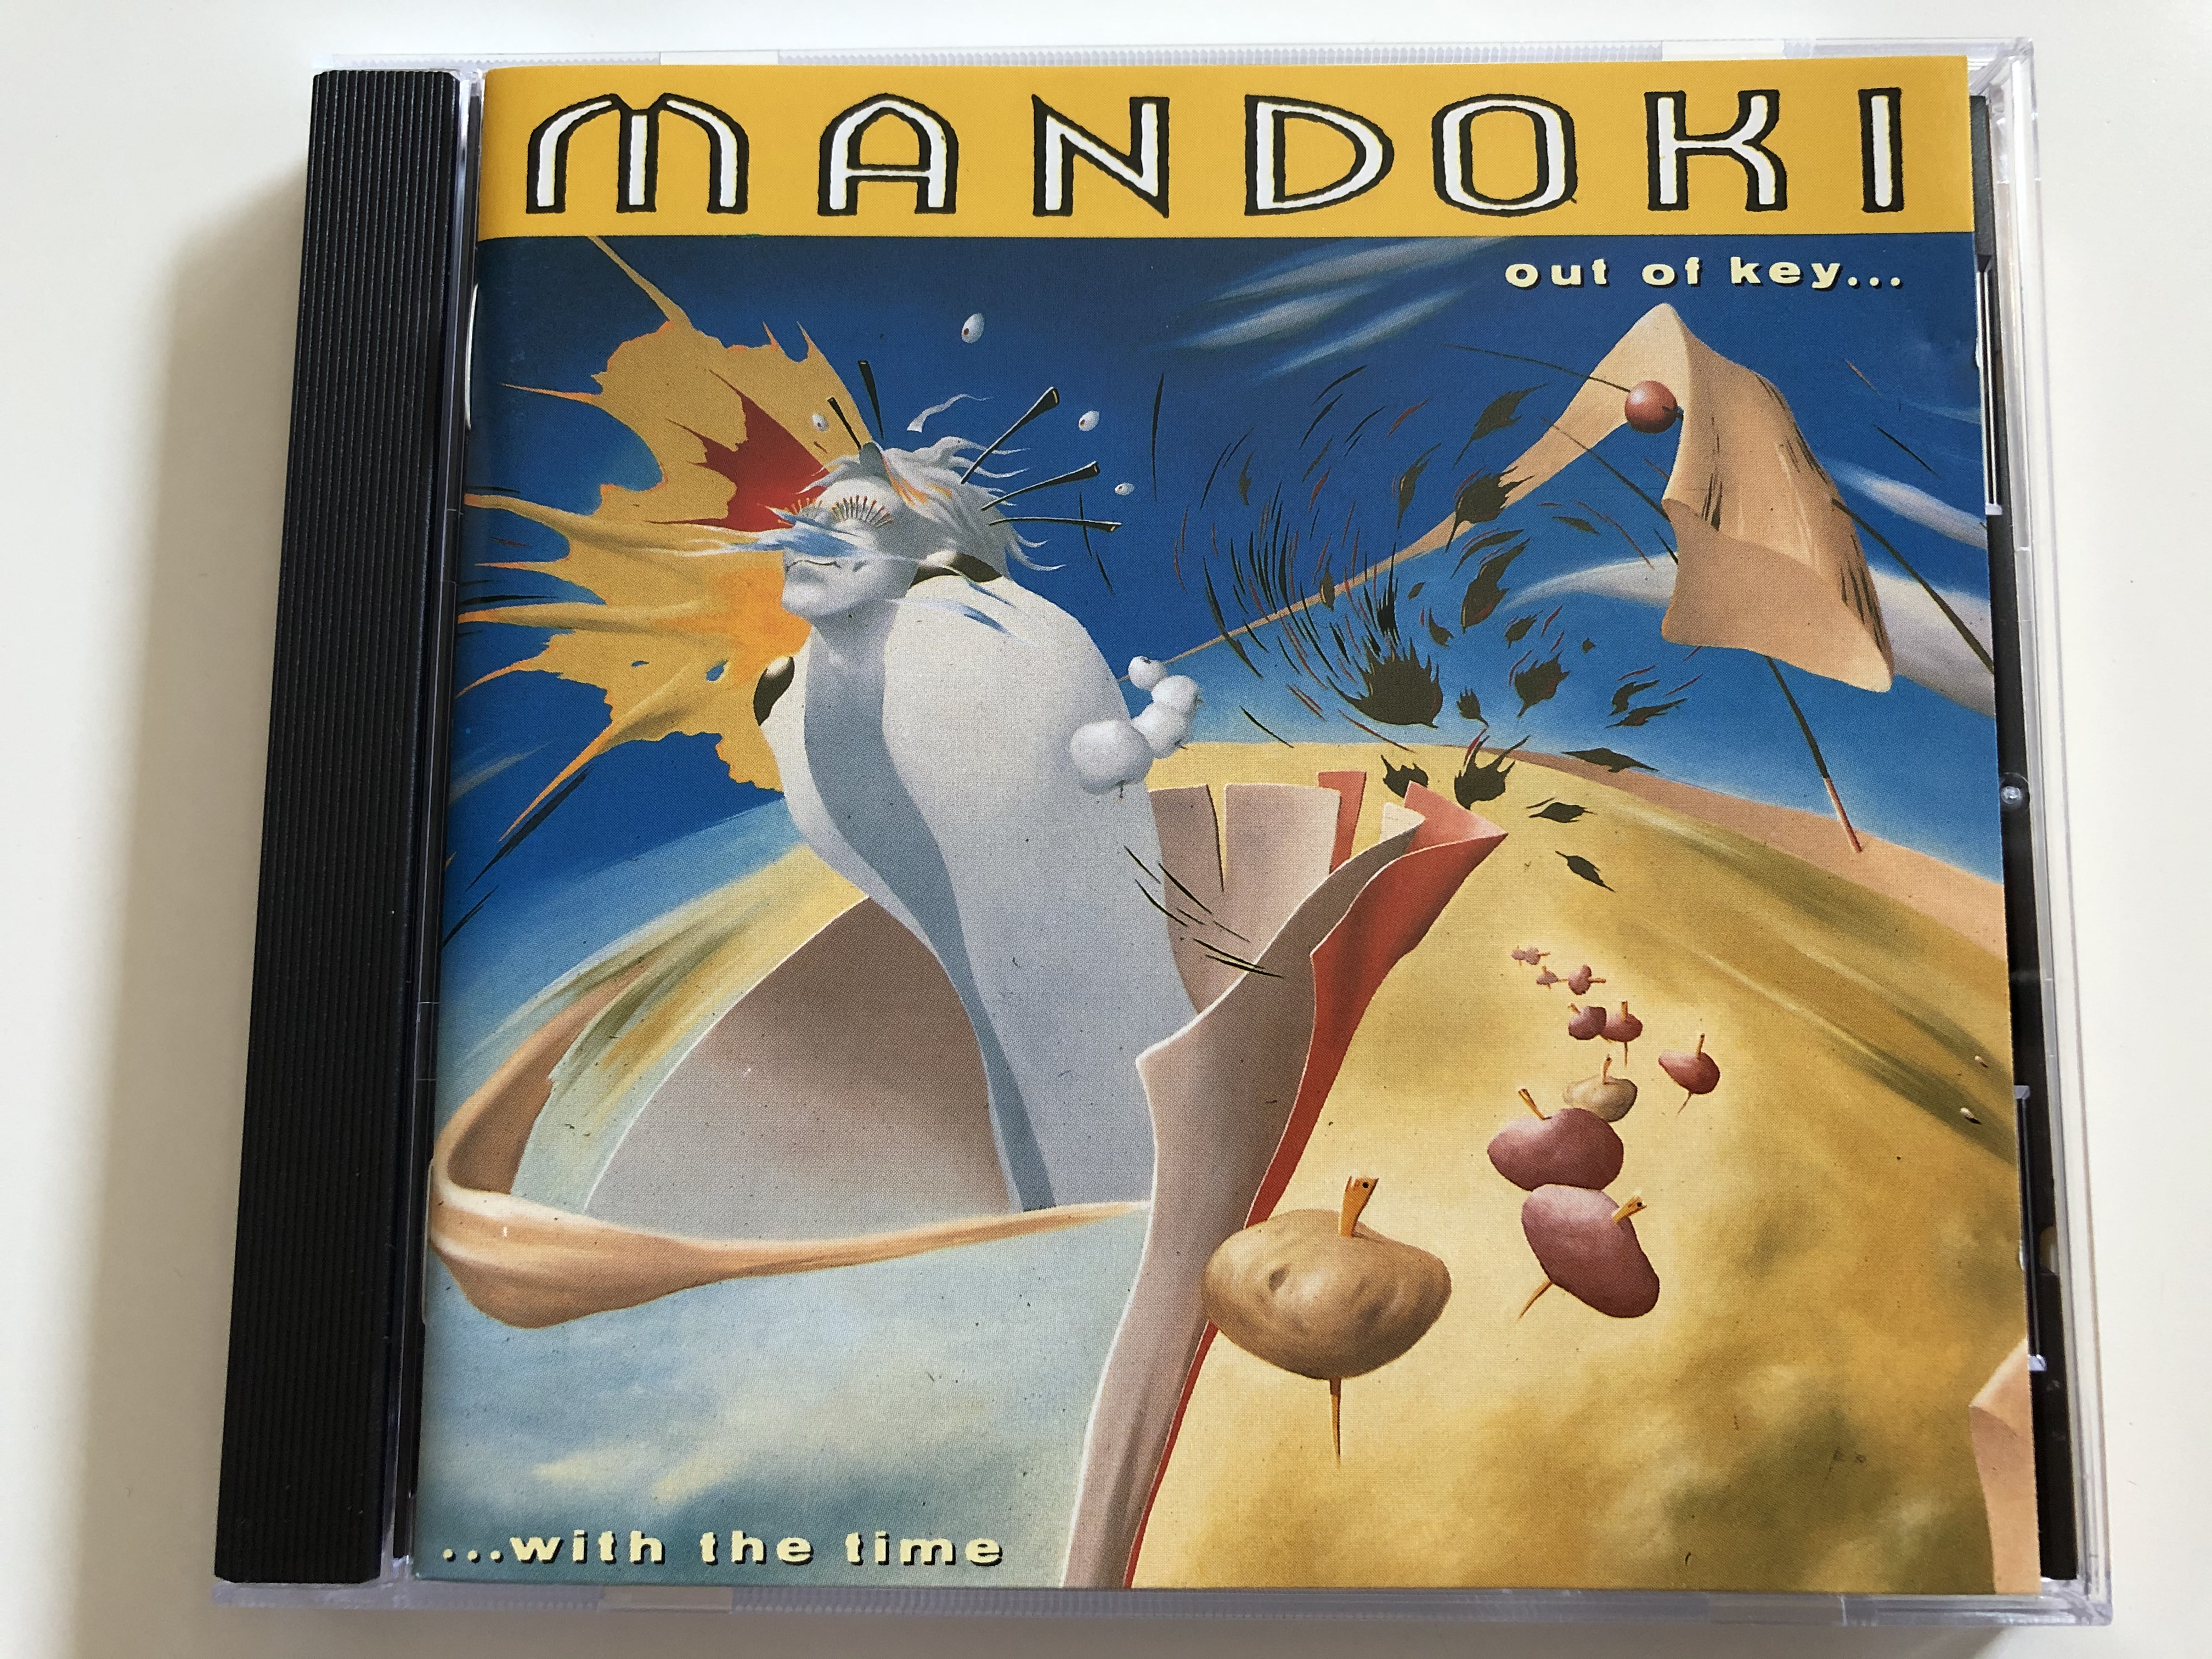 mandoki-out-of-key...-with-the-time-electrola-audio-cd-1992-1c-564-799-504-2-1-.jpg